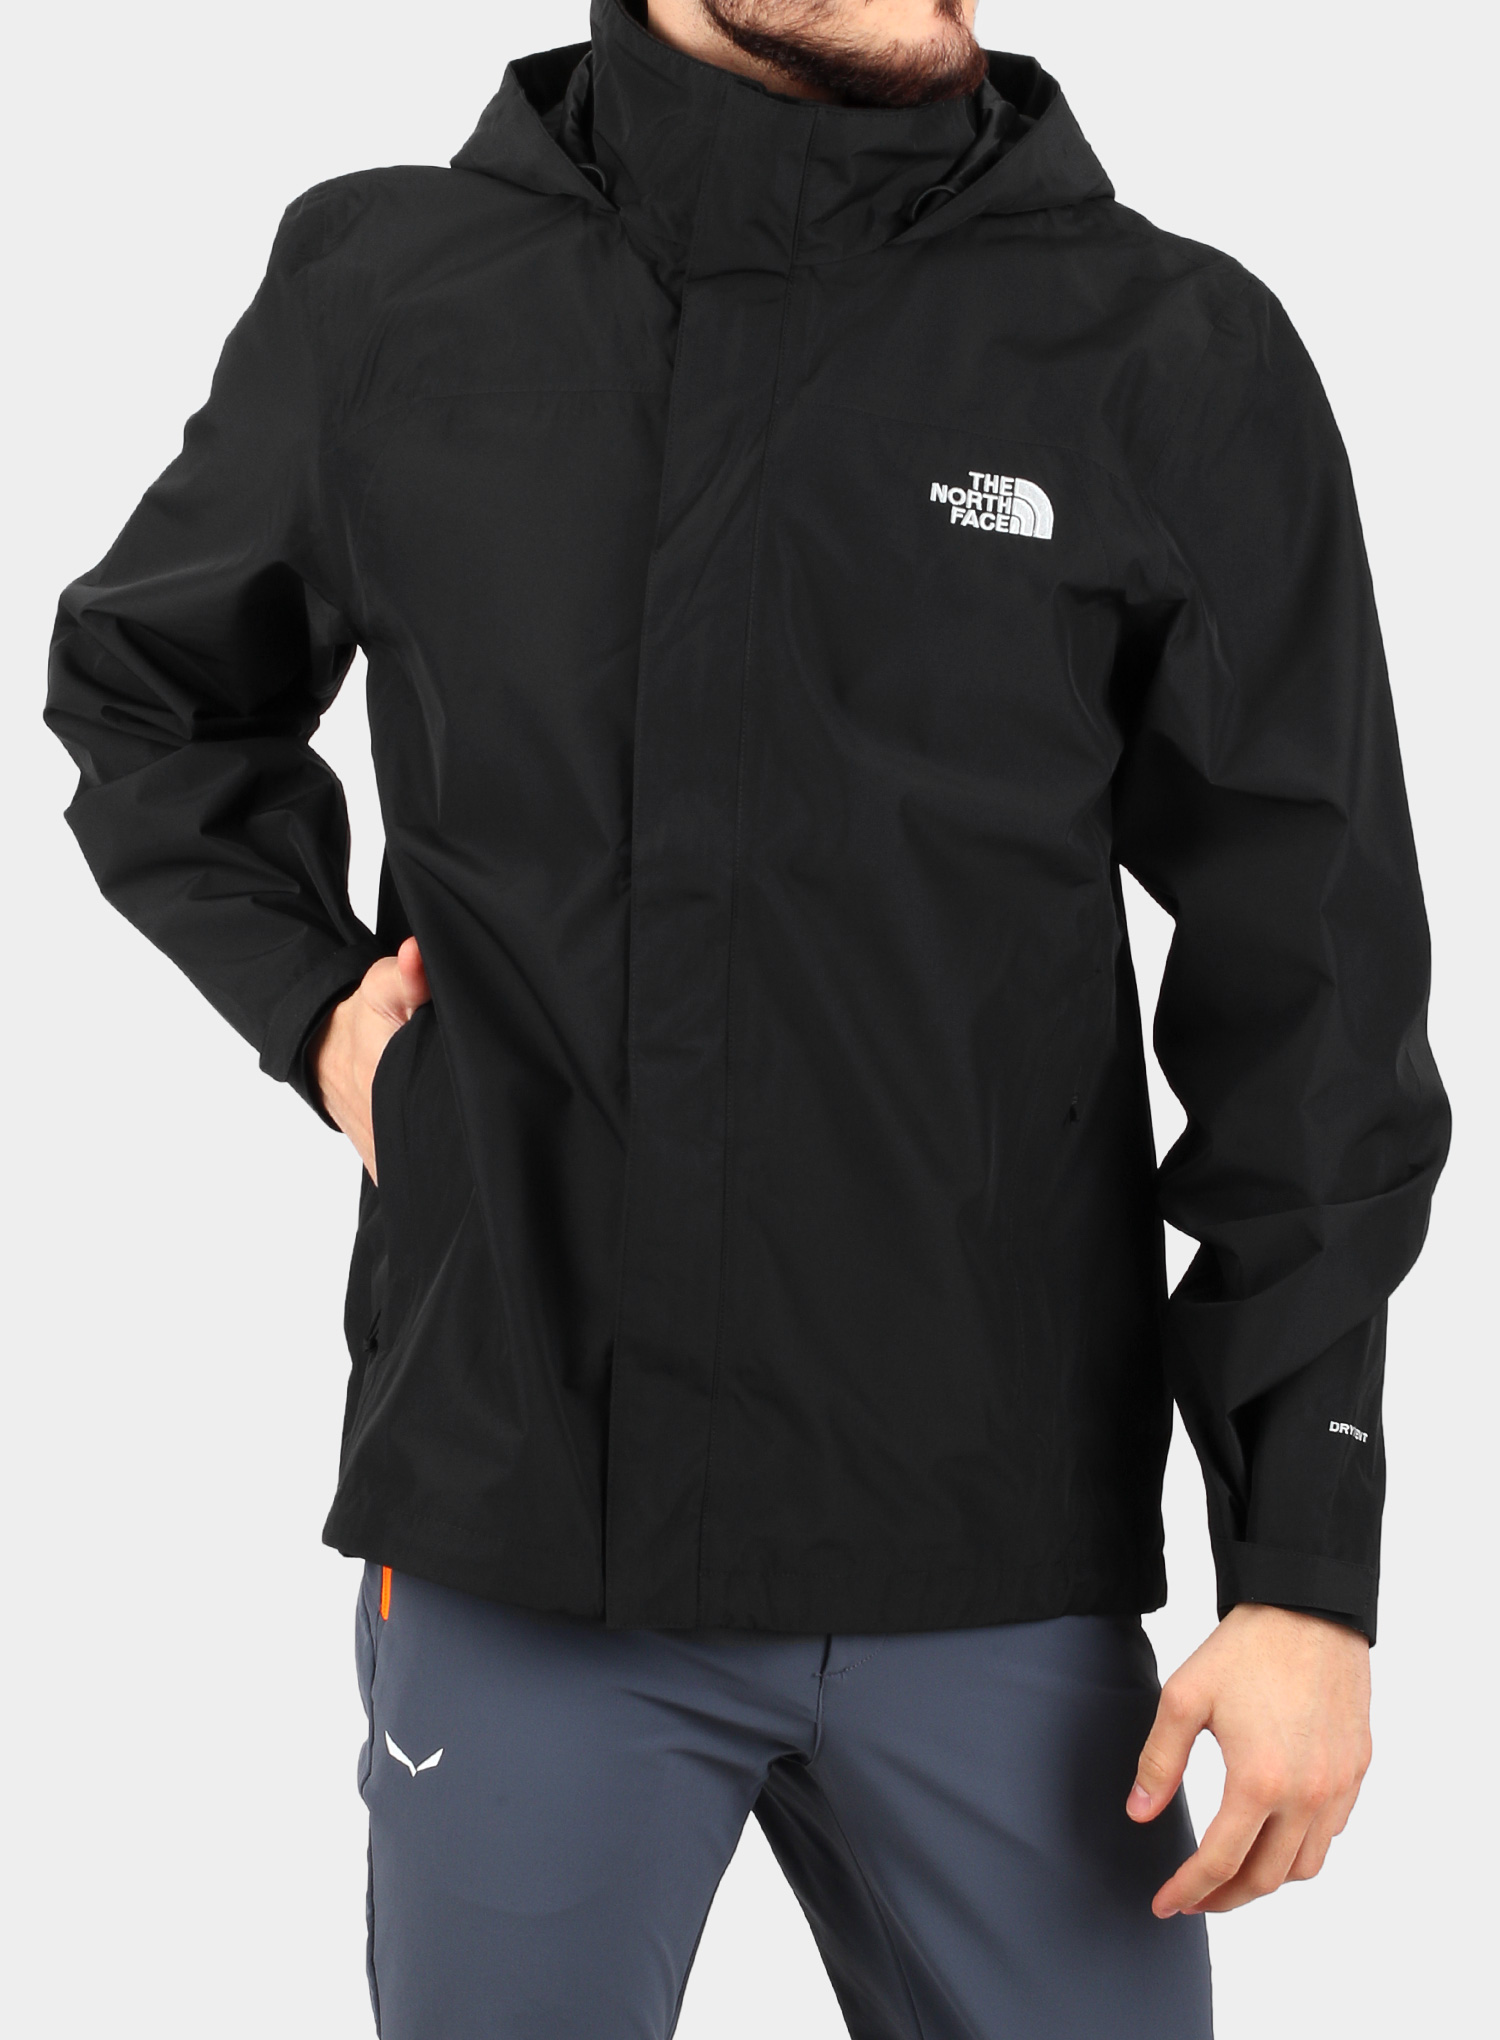 Kurtka The North Face Sangro Jacket - black - zdjęcie nr. 1